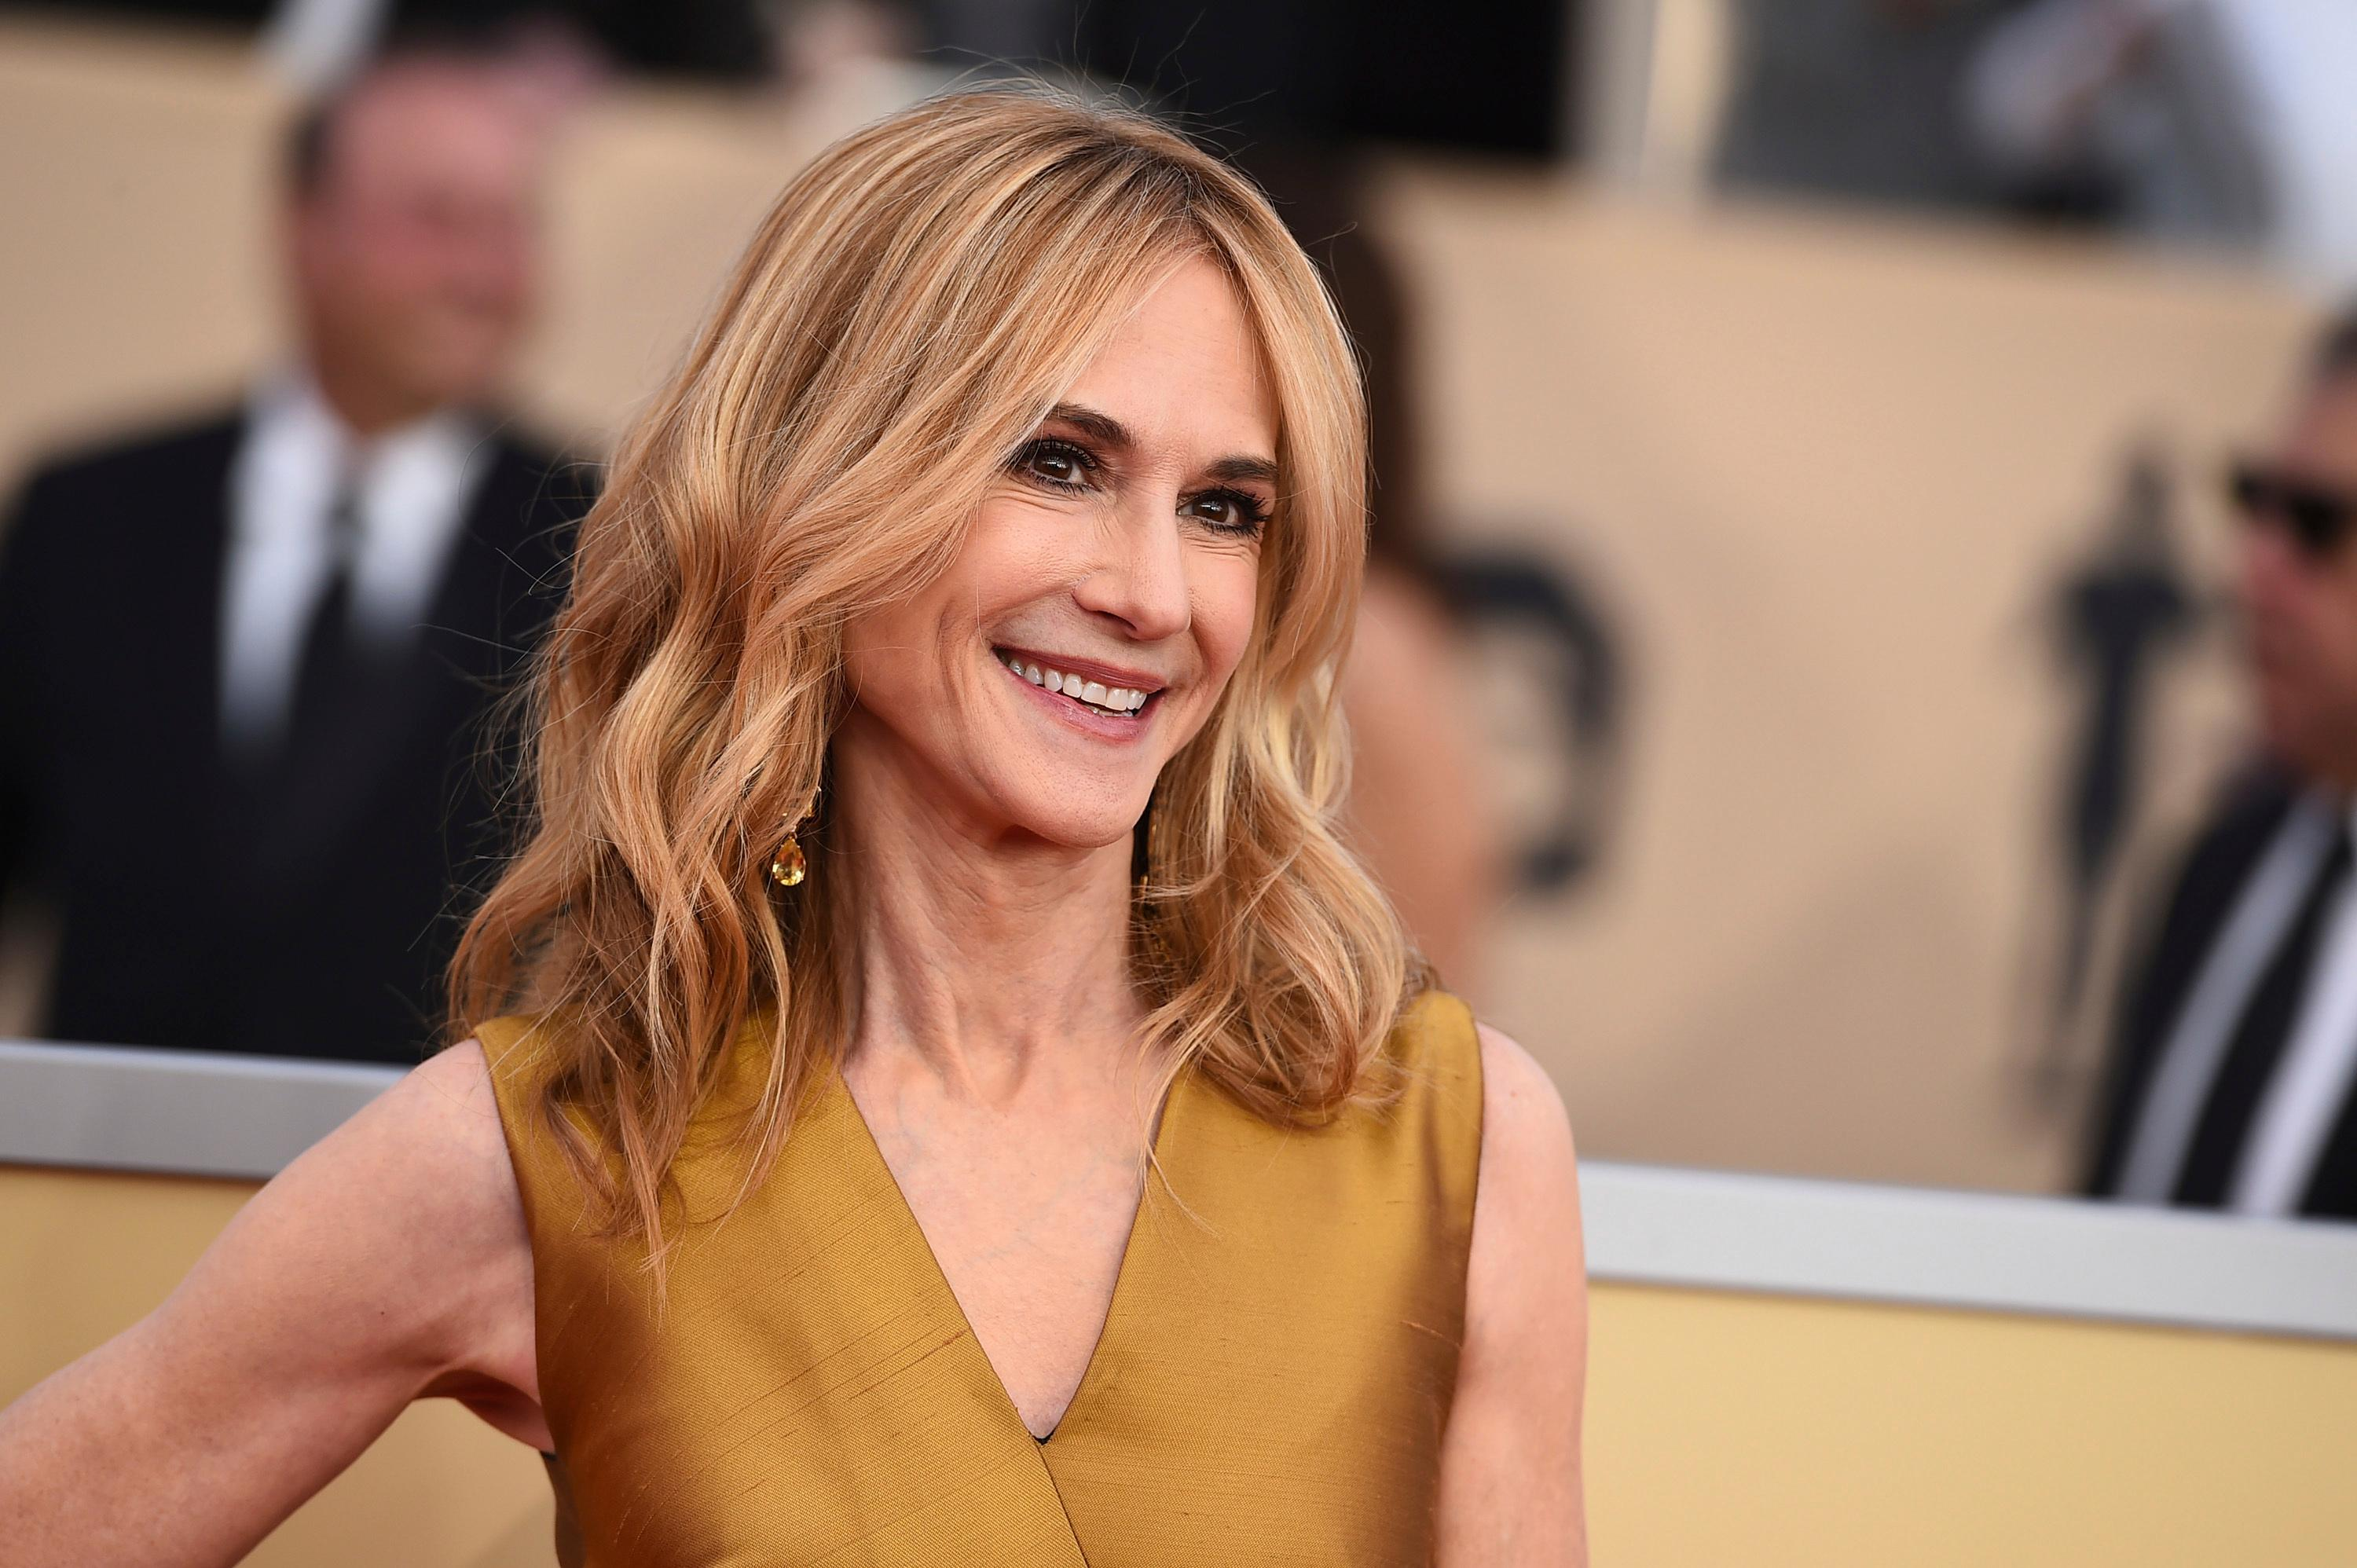 Holly Hunter arrives at the 24th annual Screen Actors Guild Awards at the Shrine Auditorium & Expo Hall on Sunday, Jan. 21, 2018, in Los Angeles. (Photo by Jordan Strauss/Invision/AP)